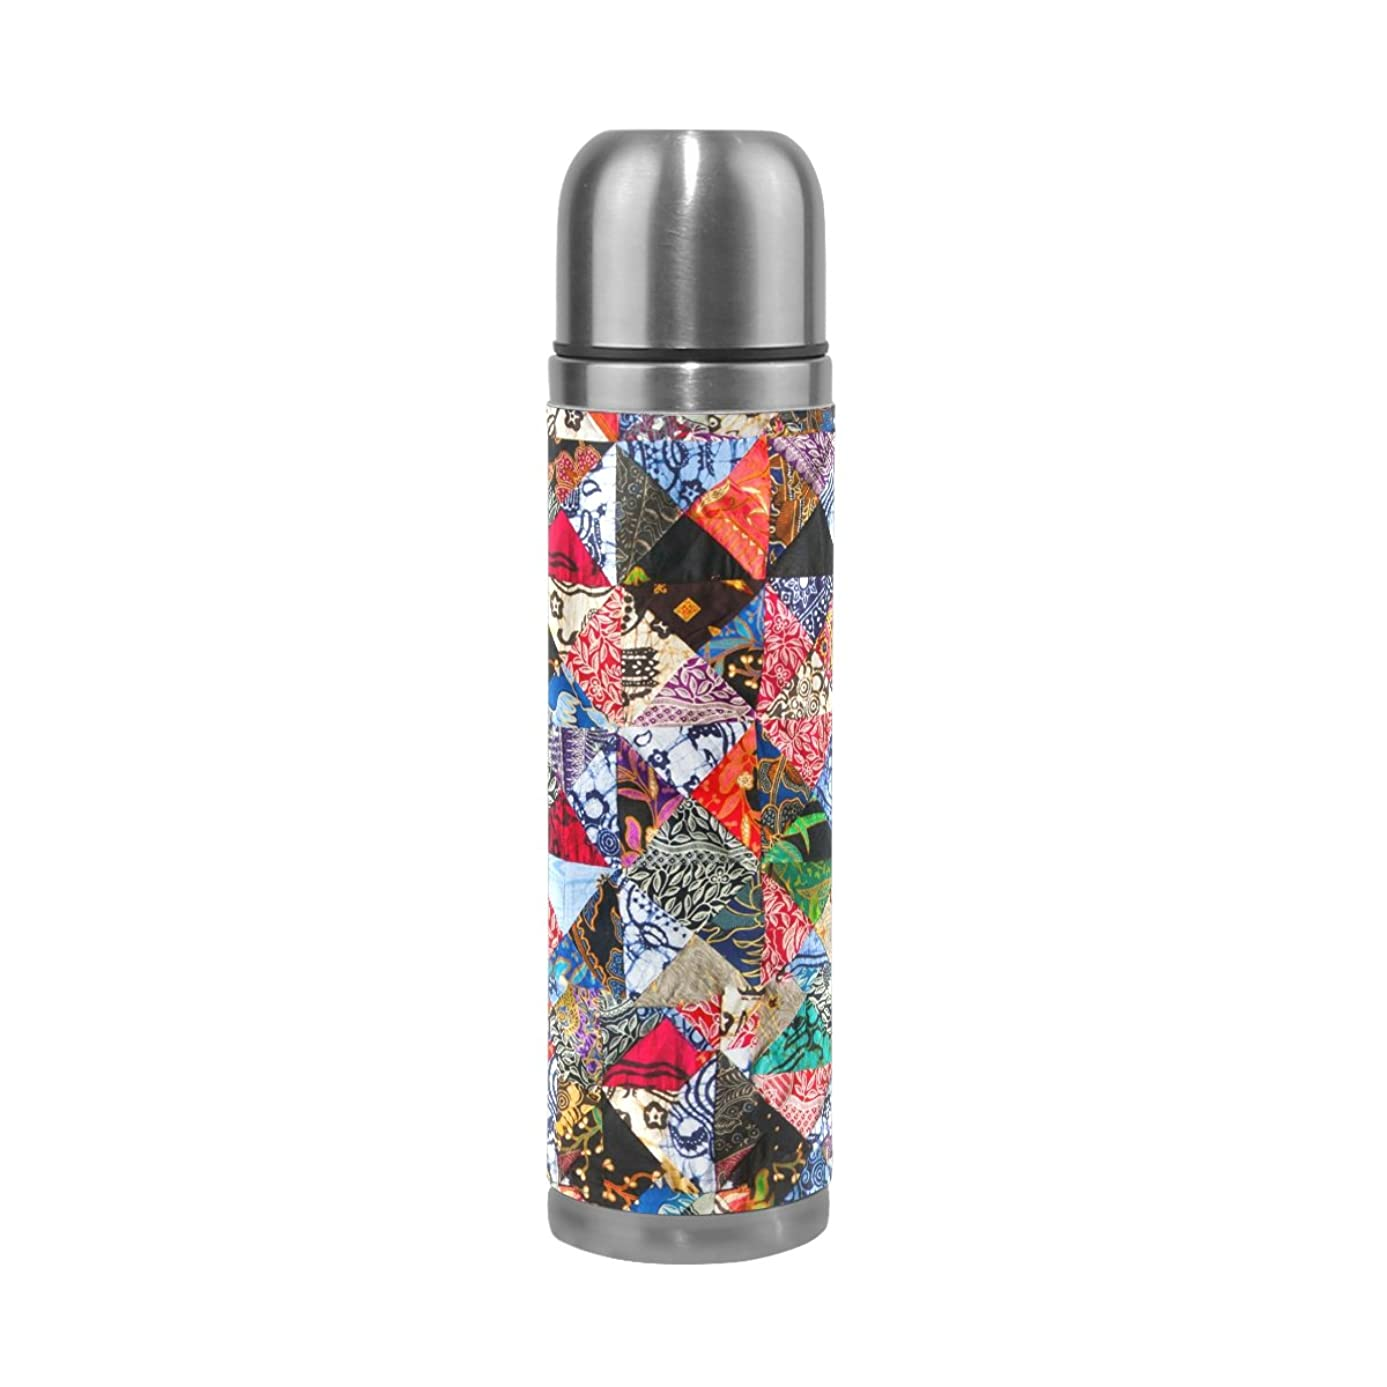 FENNEN Square Flower Double Walled Stainless Steel Thermos Water Bottle Vacuum Cup Insulated Leak Proof Flask Jug for 500ML Coffee Tea Water